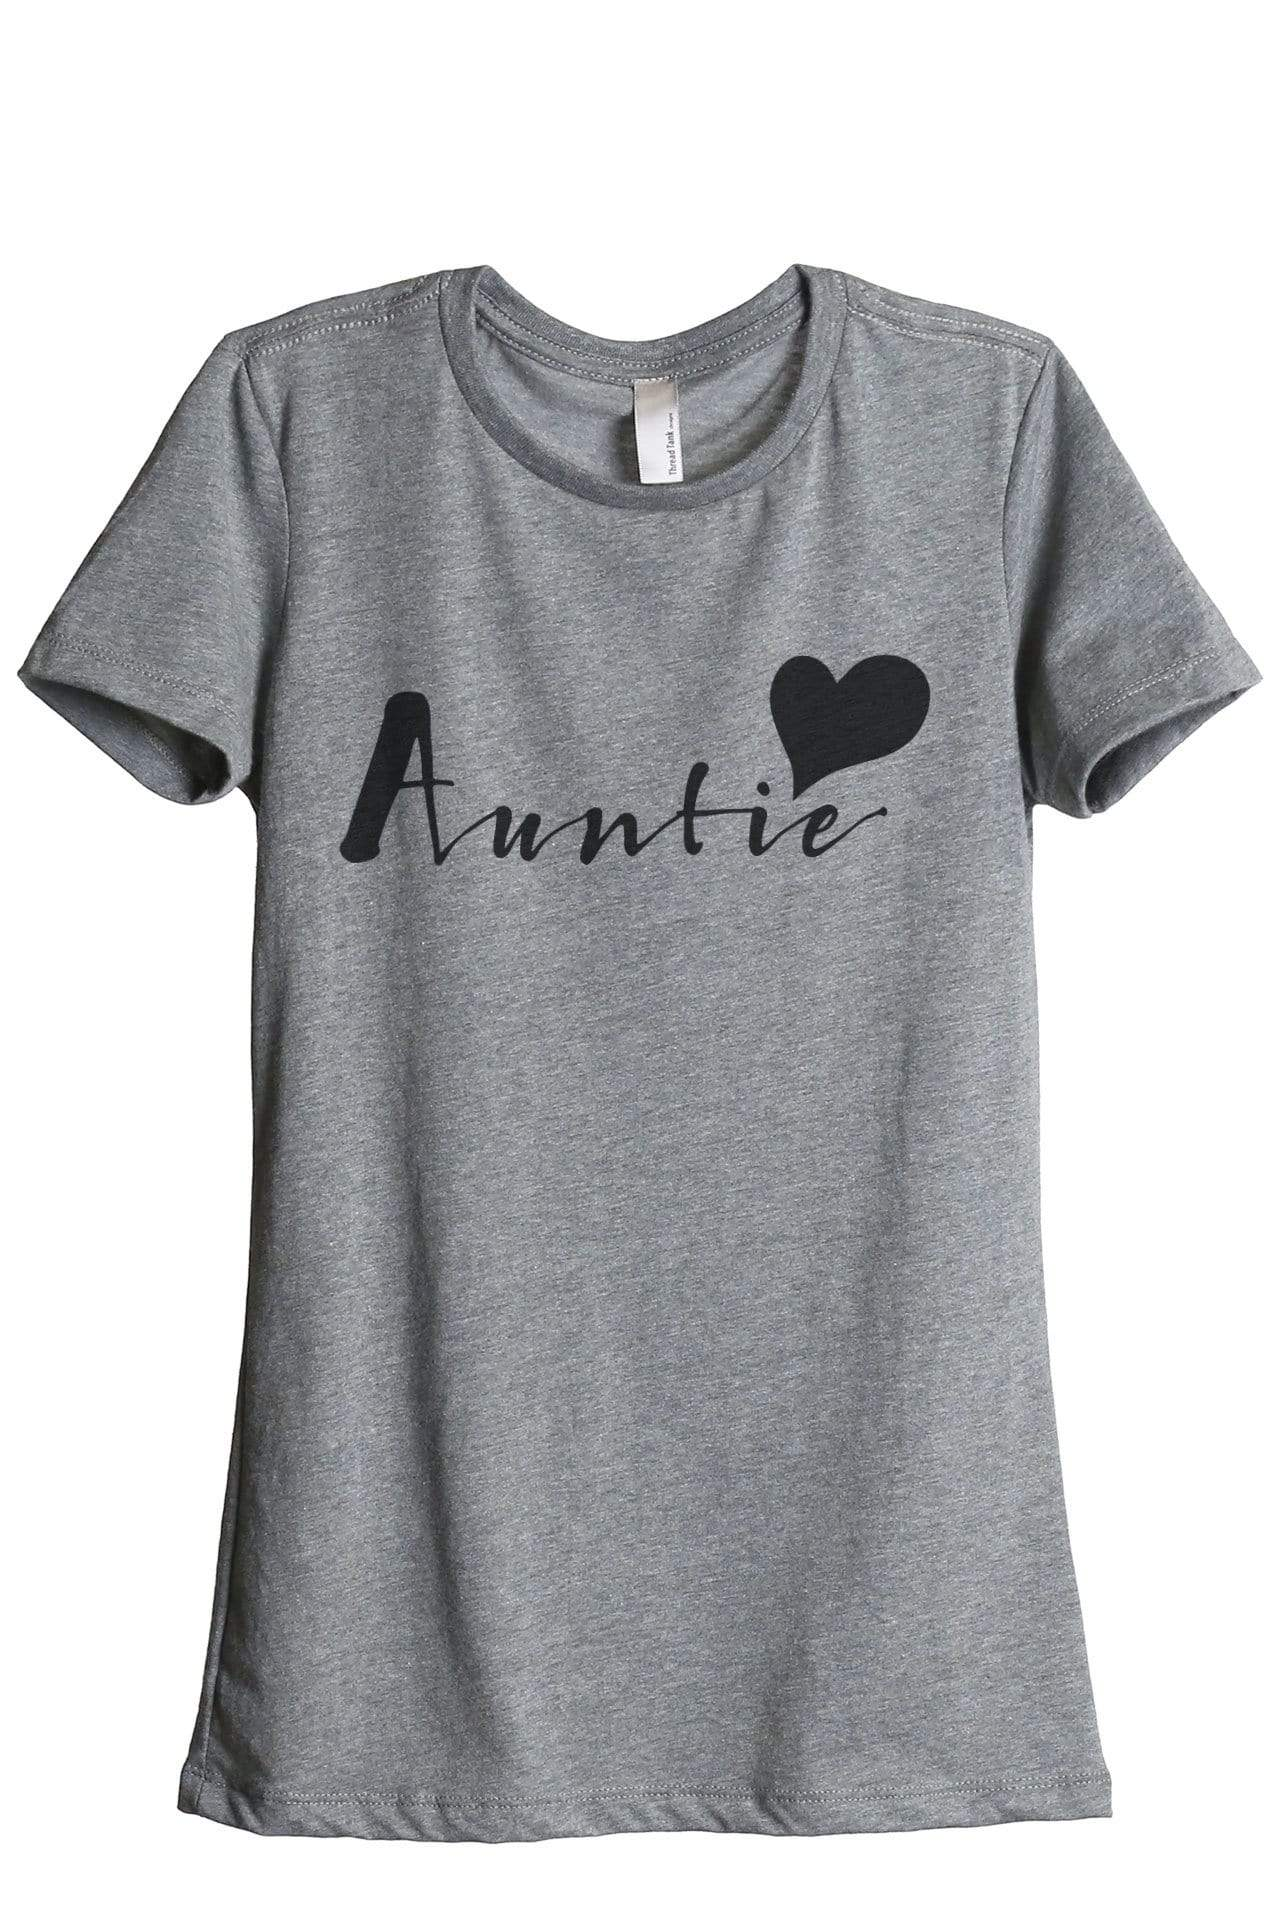 Auntie Heart - Thread Tank | Stories You Can Wear | T-Shirts, Tank Tops and Sweatshirts